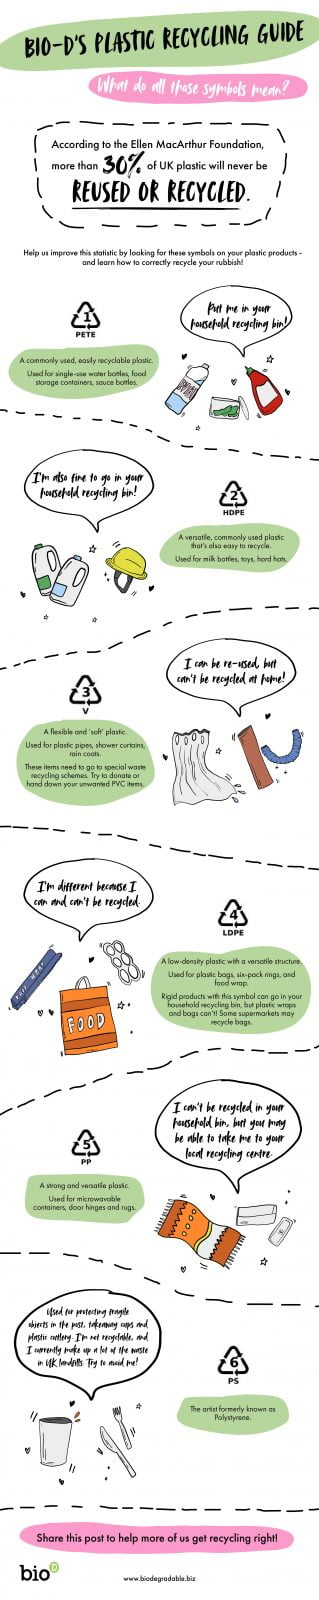 Recycling jargon buster infographic